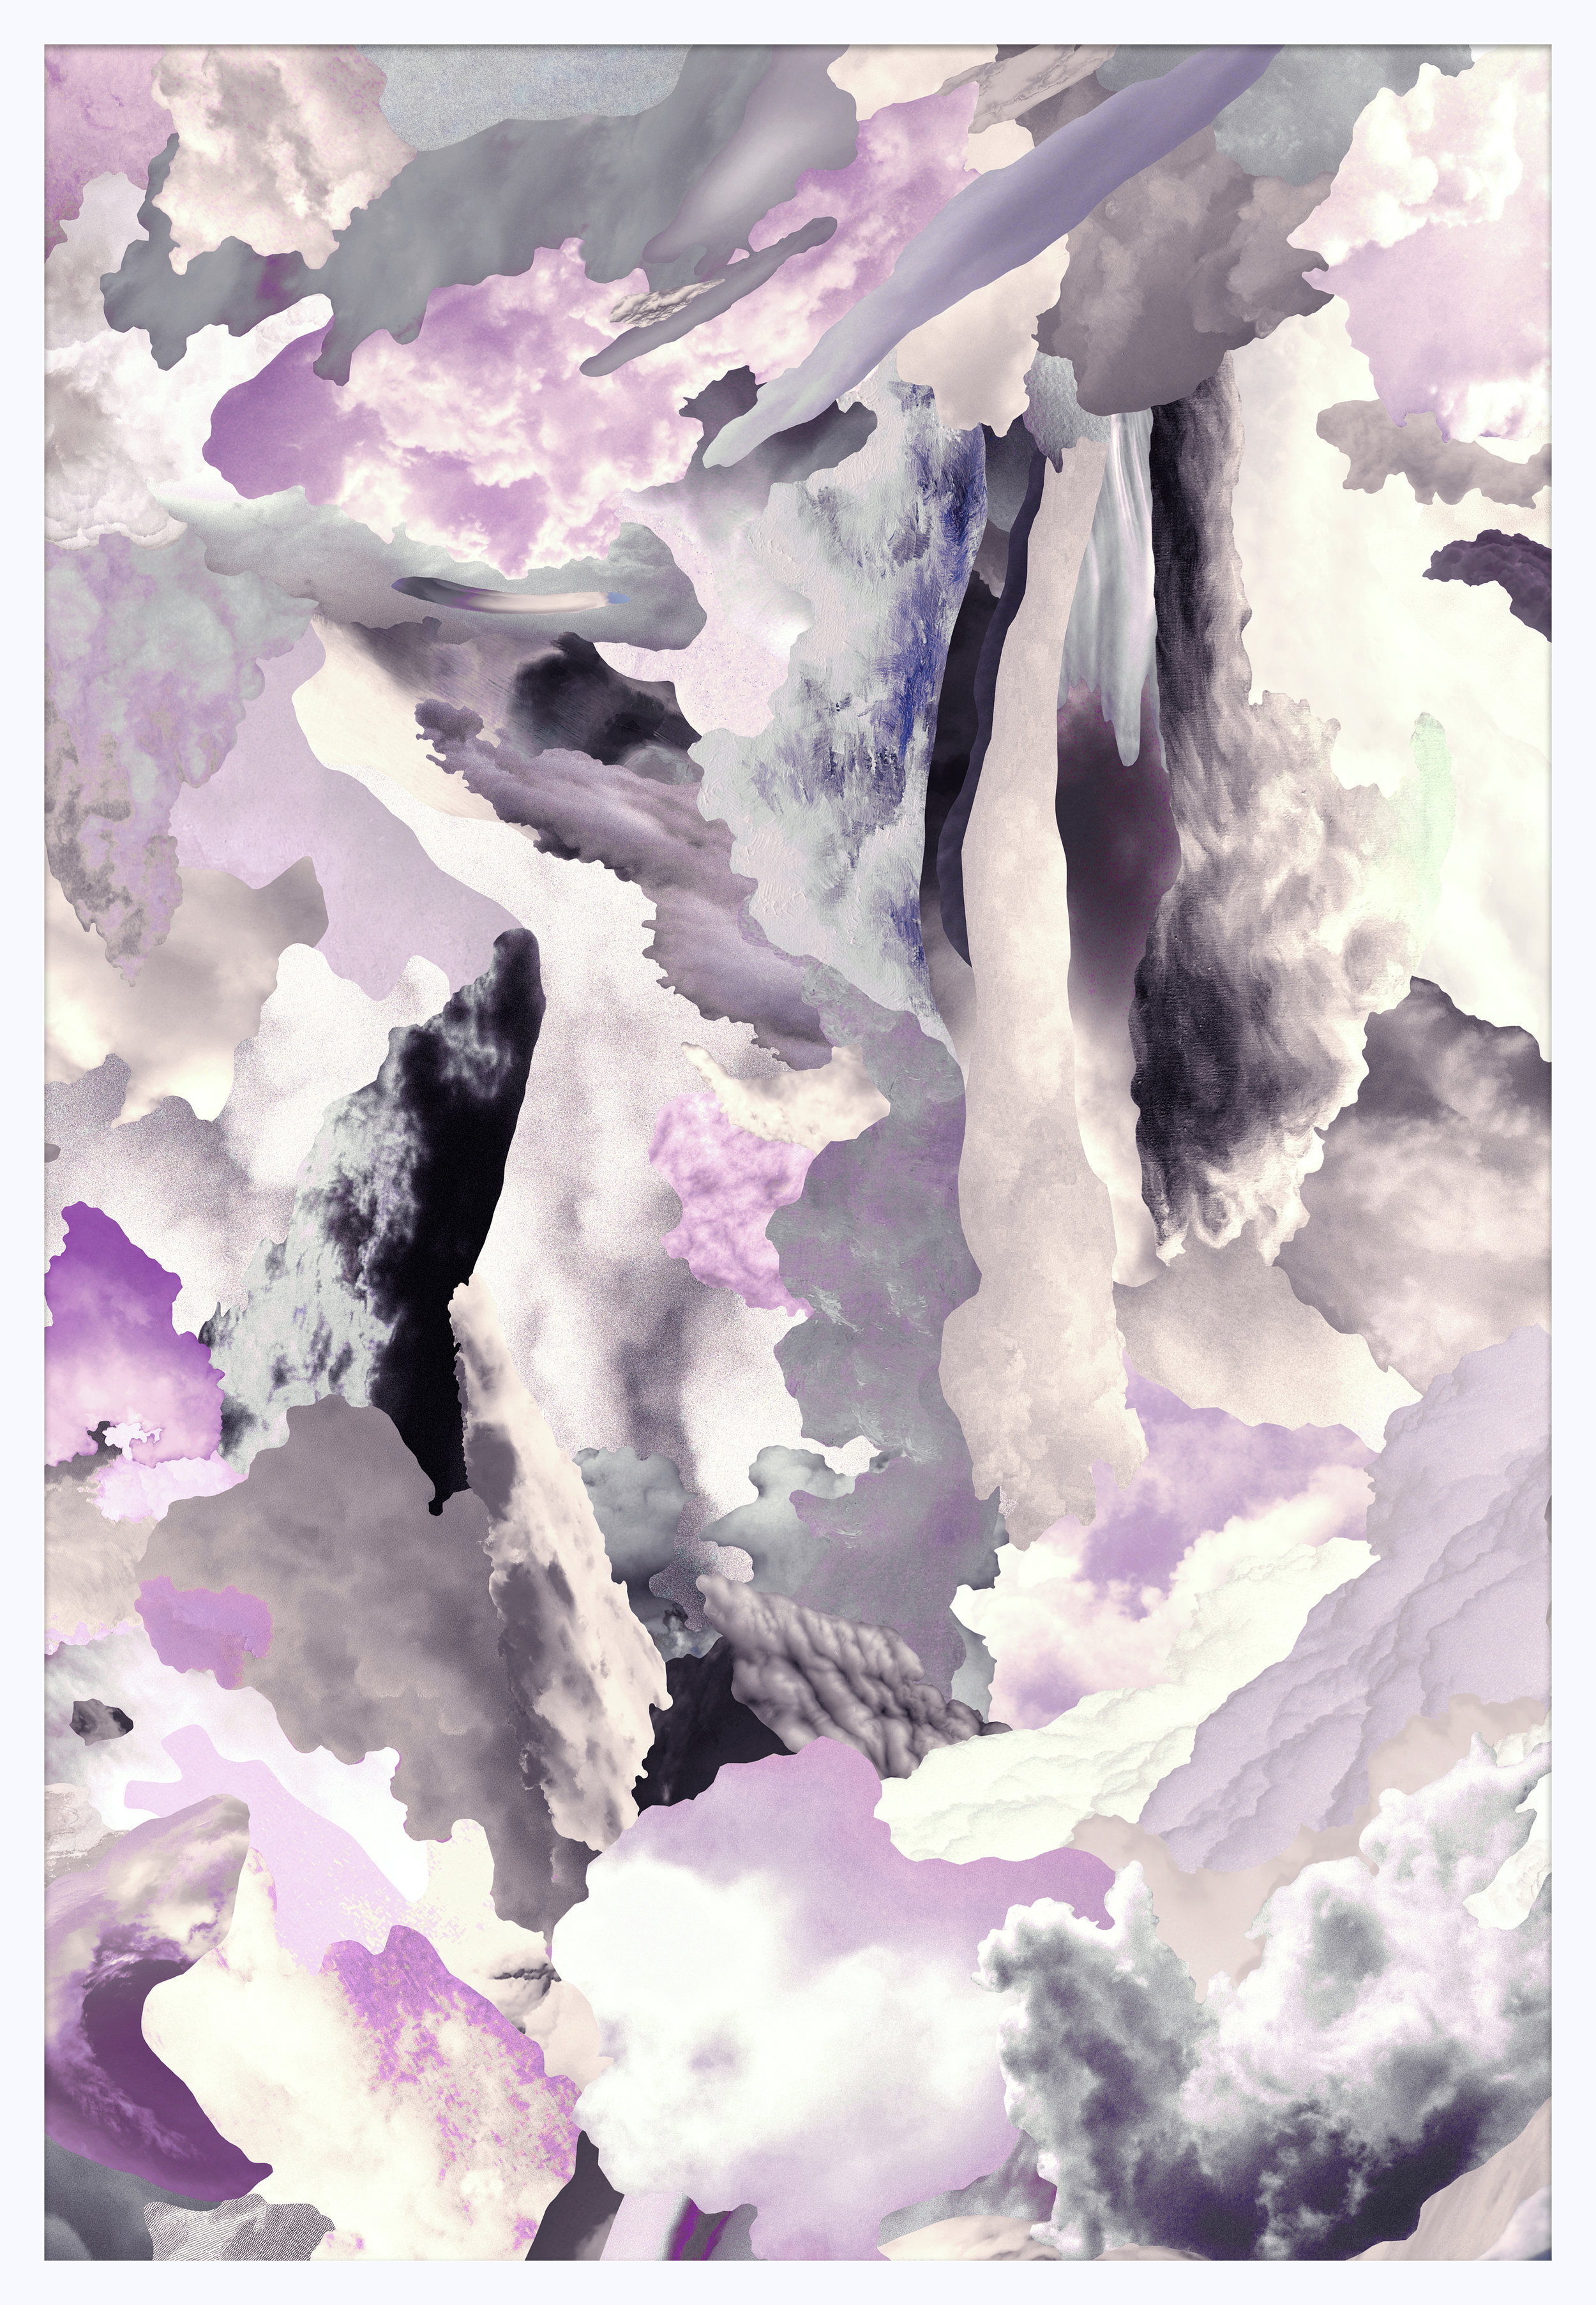 Case Simmons, Clouds V, Pigment Print, Digital Collage, Digital Art, Photoshop Collage, Contemporary Collage, M+B Gallery, Los Angeles